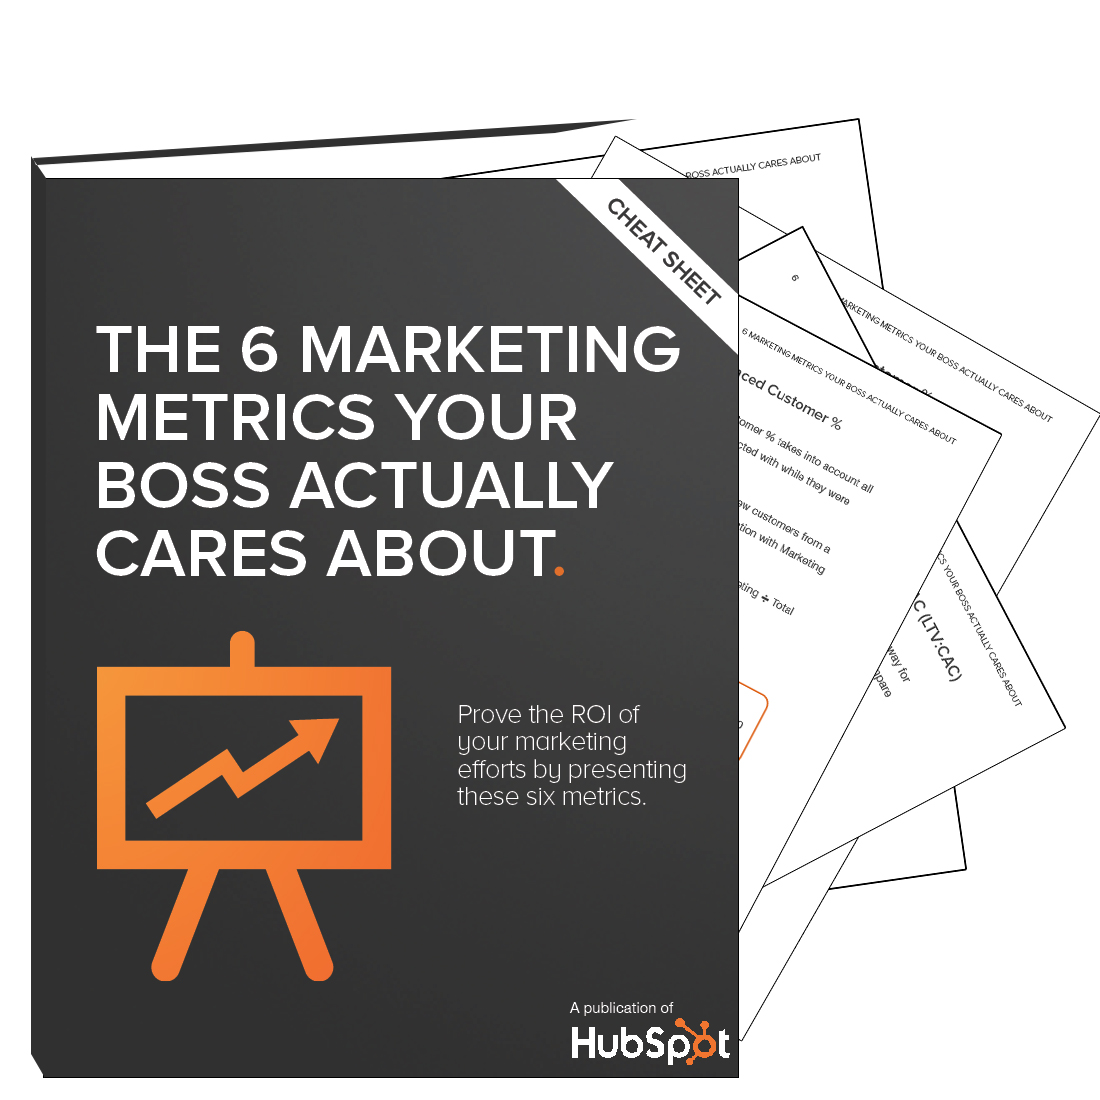 The Six Marketing Metrics Your Boss Actually Cares About